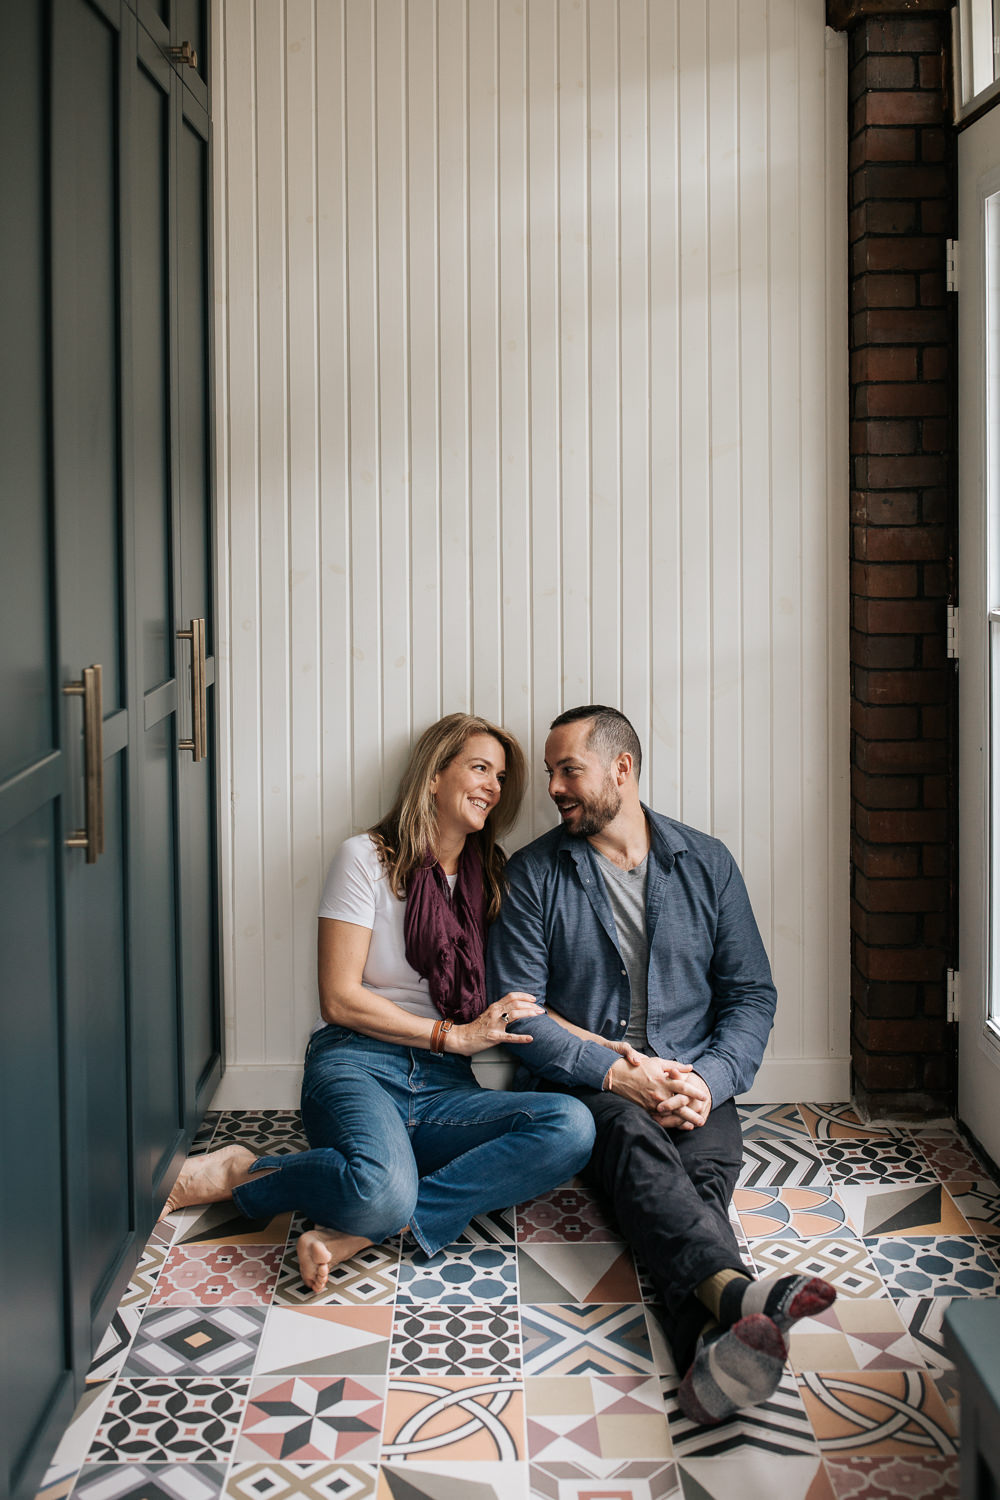 husband and wife sitting on ground of colourful tile, leaning against white wall, arms linked and holding hands, smiling at one another -  Barrie Lifestyle Photos